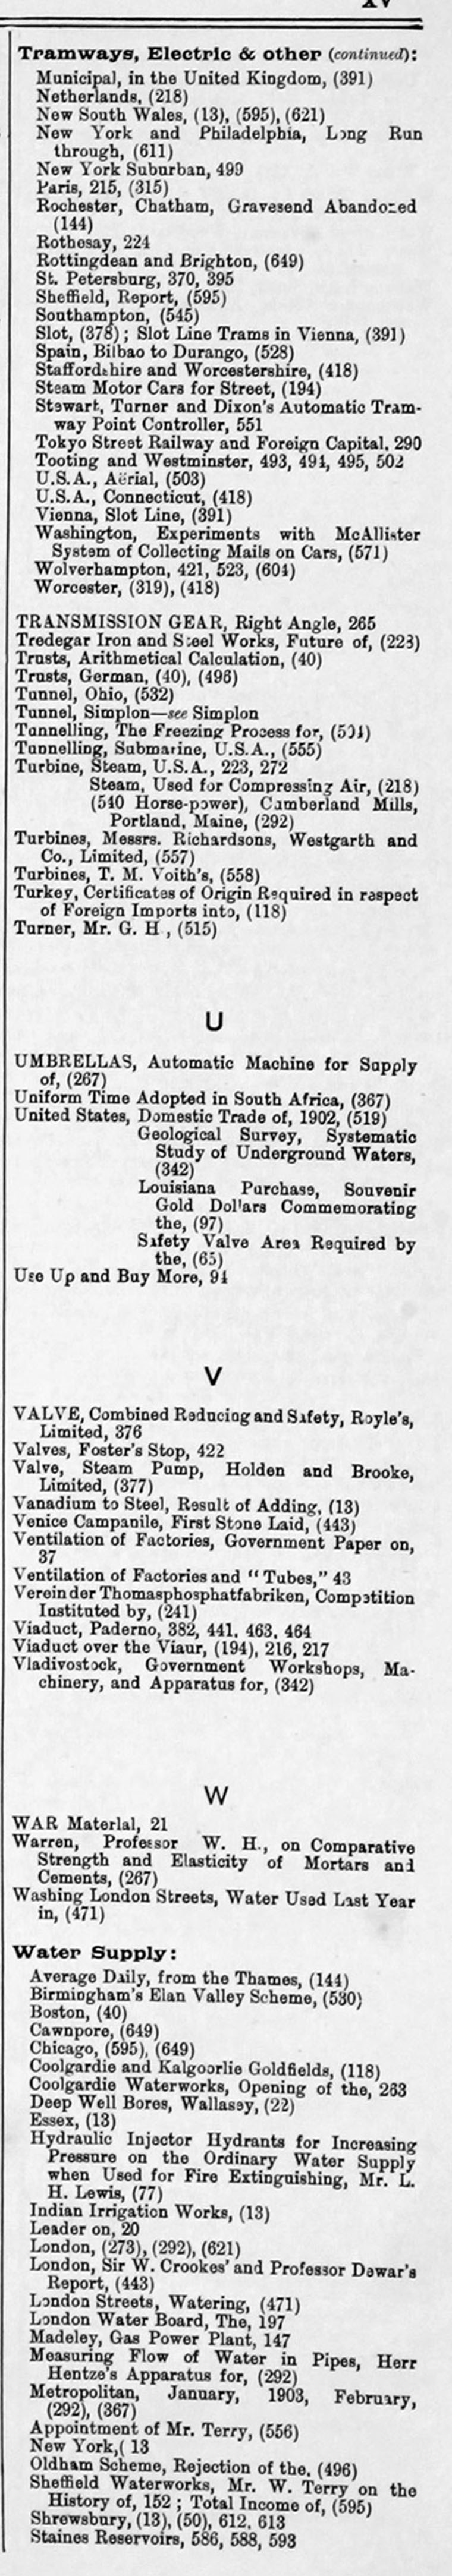 The Engineer 1903 Jan Jun: Index: Miscellaneous Graces Guide